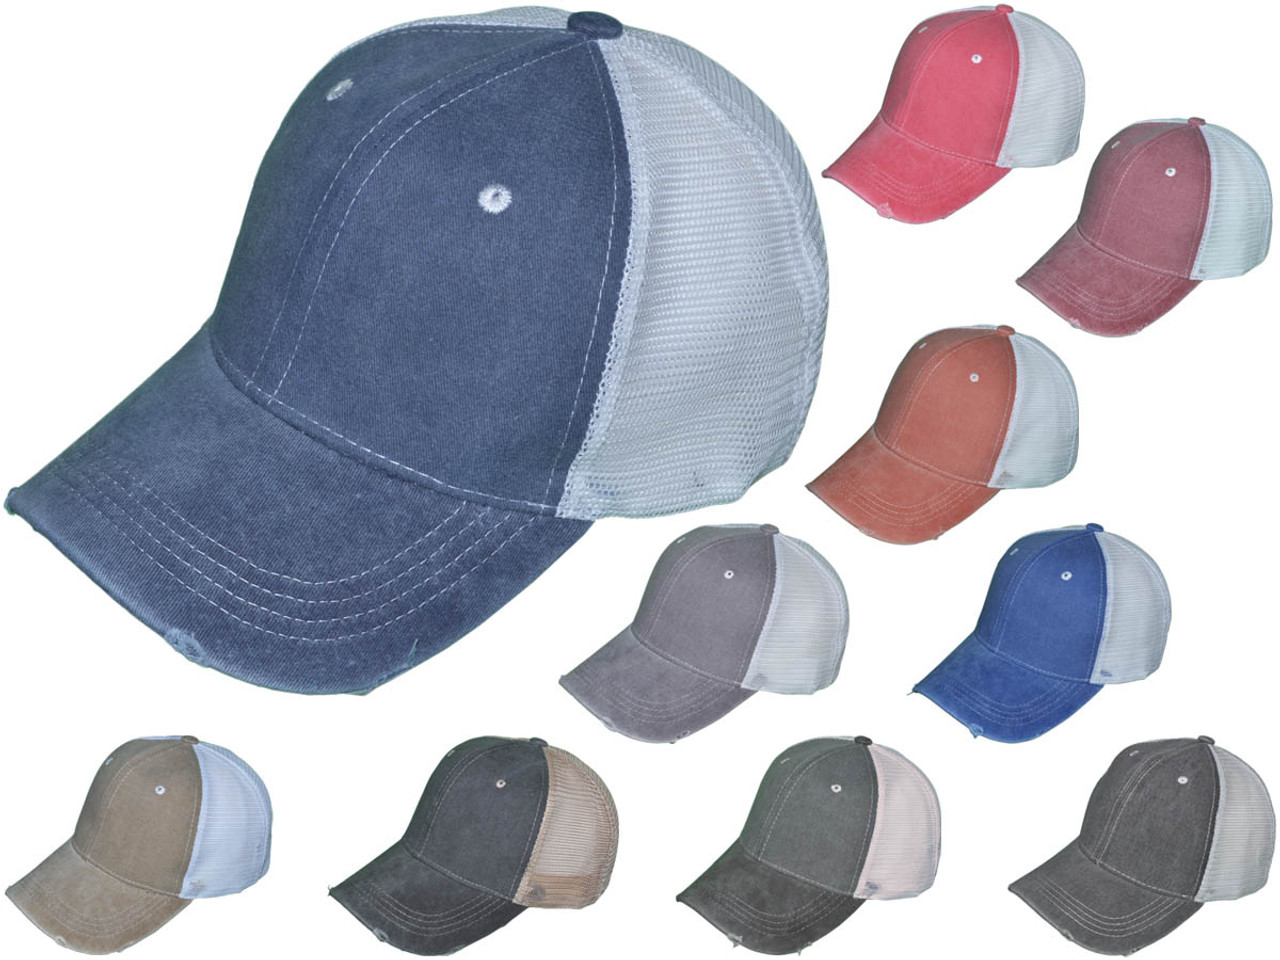 fe233af37 Vintage Pigment Dyed Trucker Hats - BK Caps Low Profile Structured Brushed  Distressed Cotton Twill (10 Colors Available) - 5155